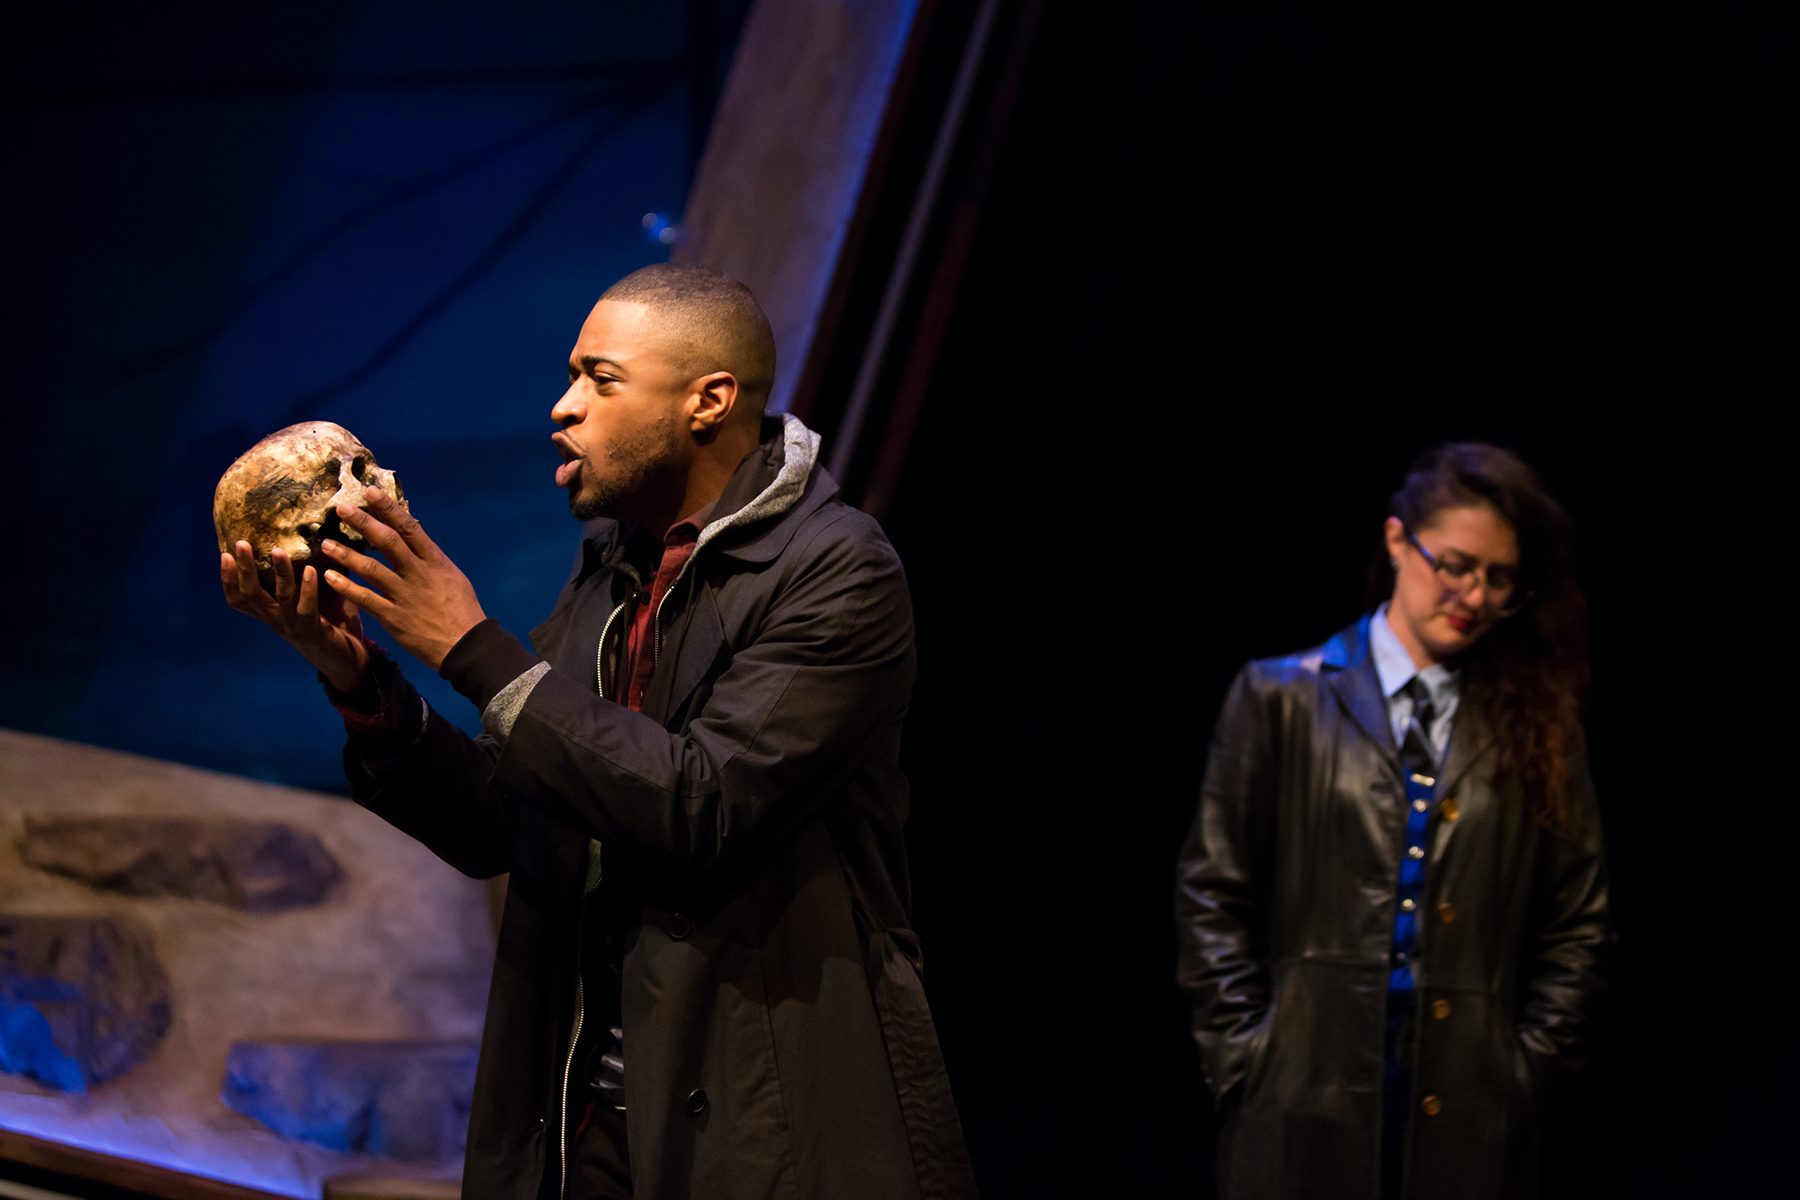 hamlet_photo_by_amyanderson_3239